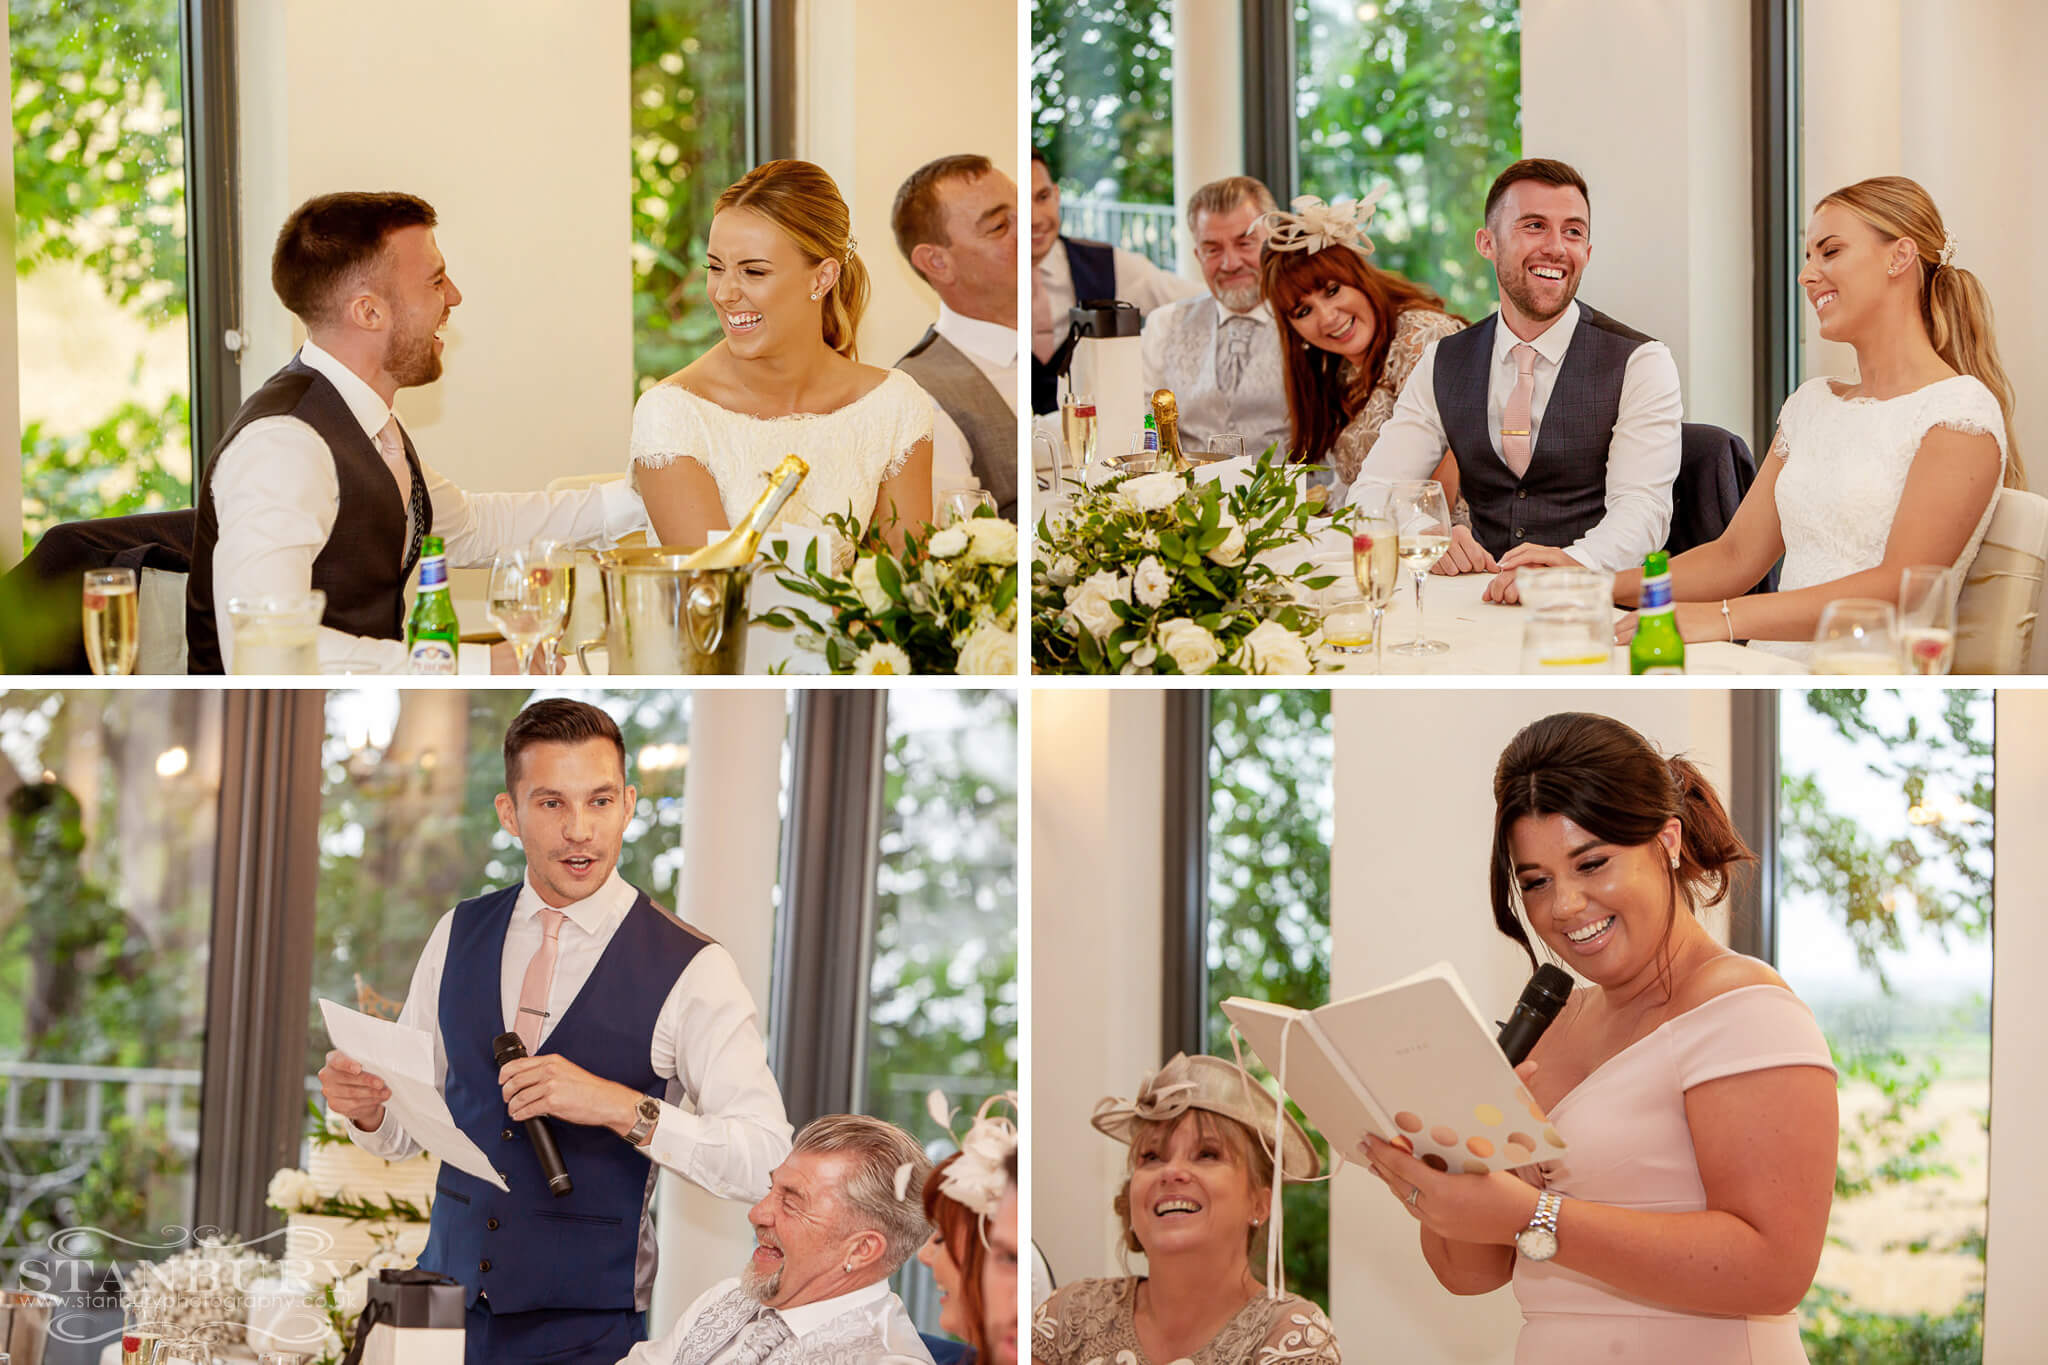 wedding-speeches-west-tower-exclusive-liverpool-venue-stanbury-photography